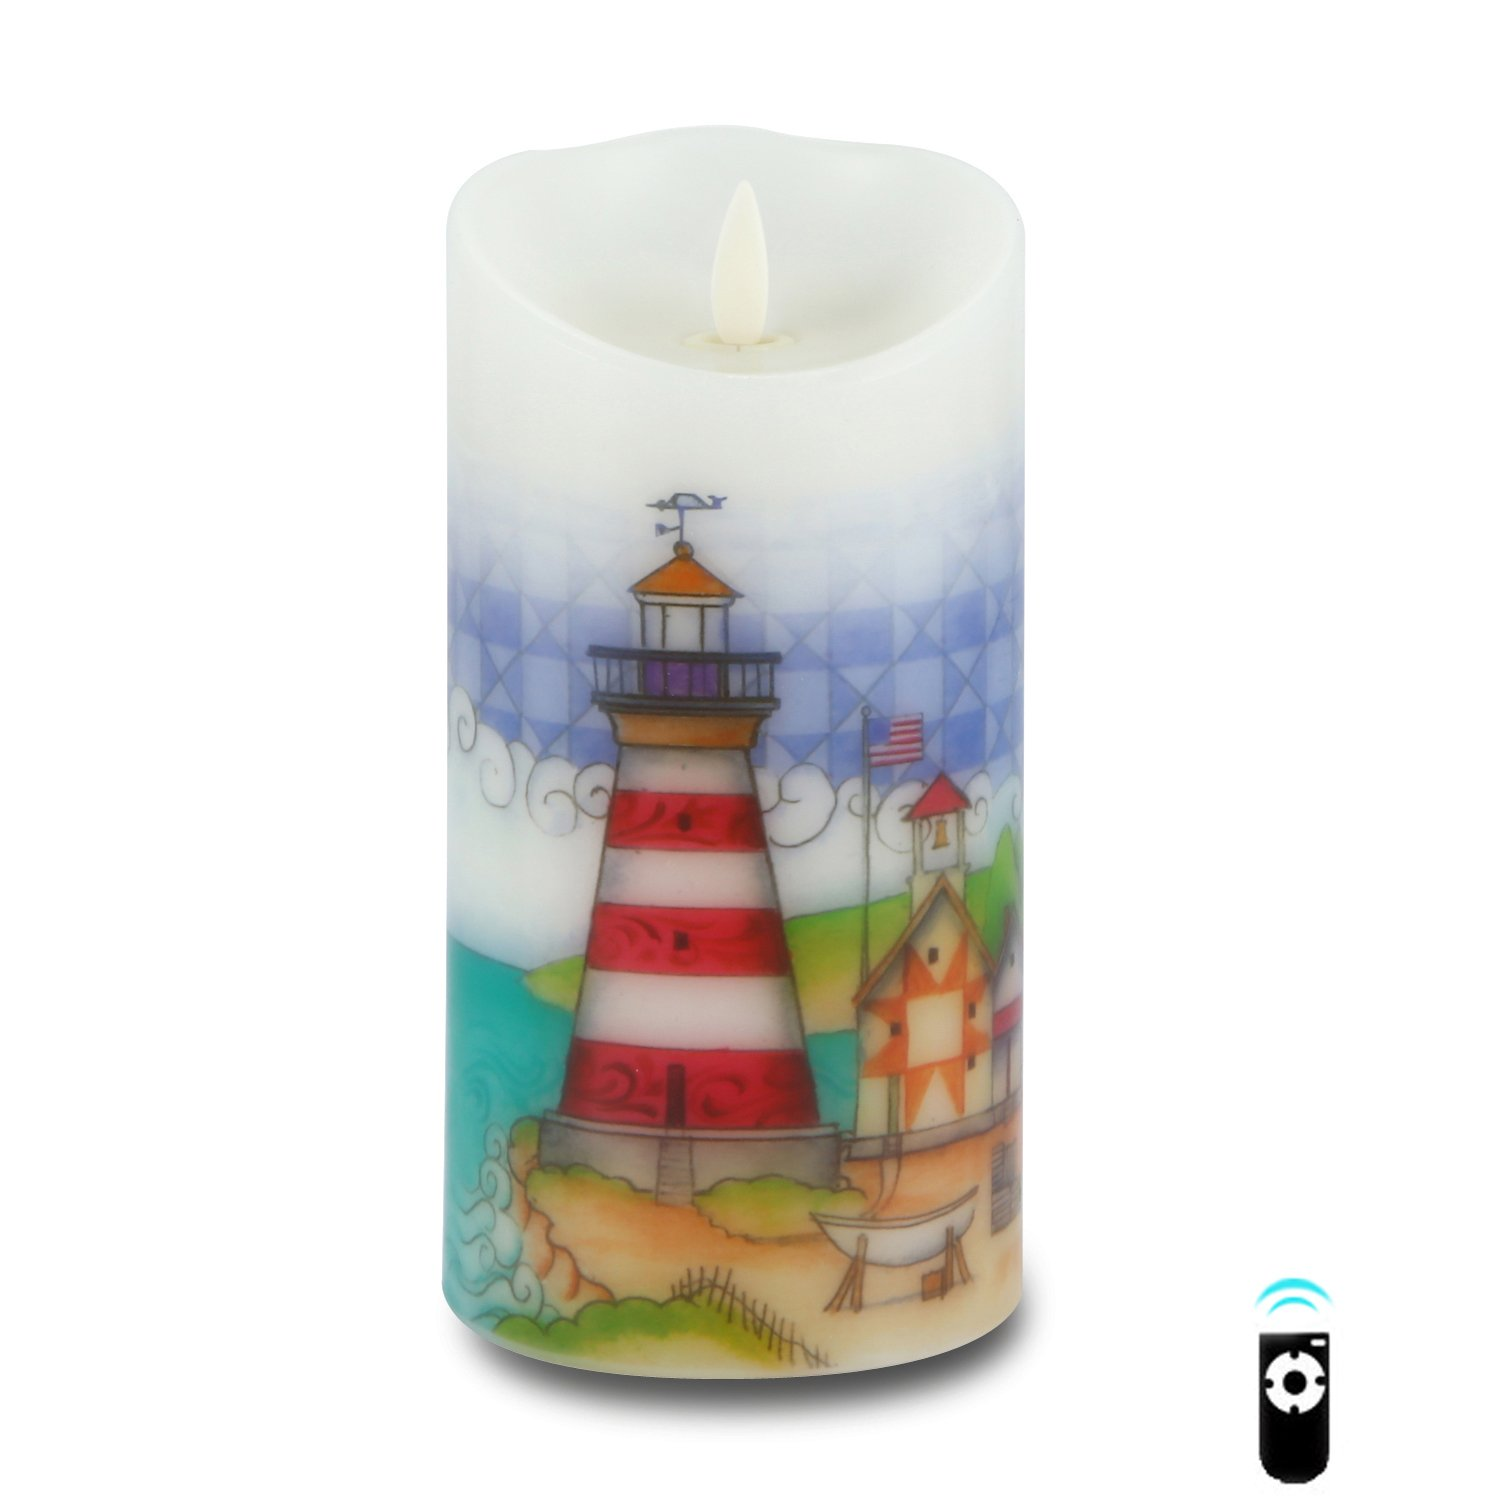 Ksperway Flameless Wax Candles, Moving Wick LED Pillar Candle with Blow ON/Off Control,Timer and Remote 3.5 by 7 Inch Picture (Lighthouse) by Ksperway (Image #2)